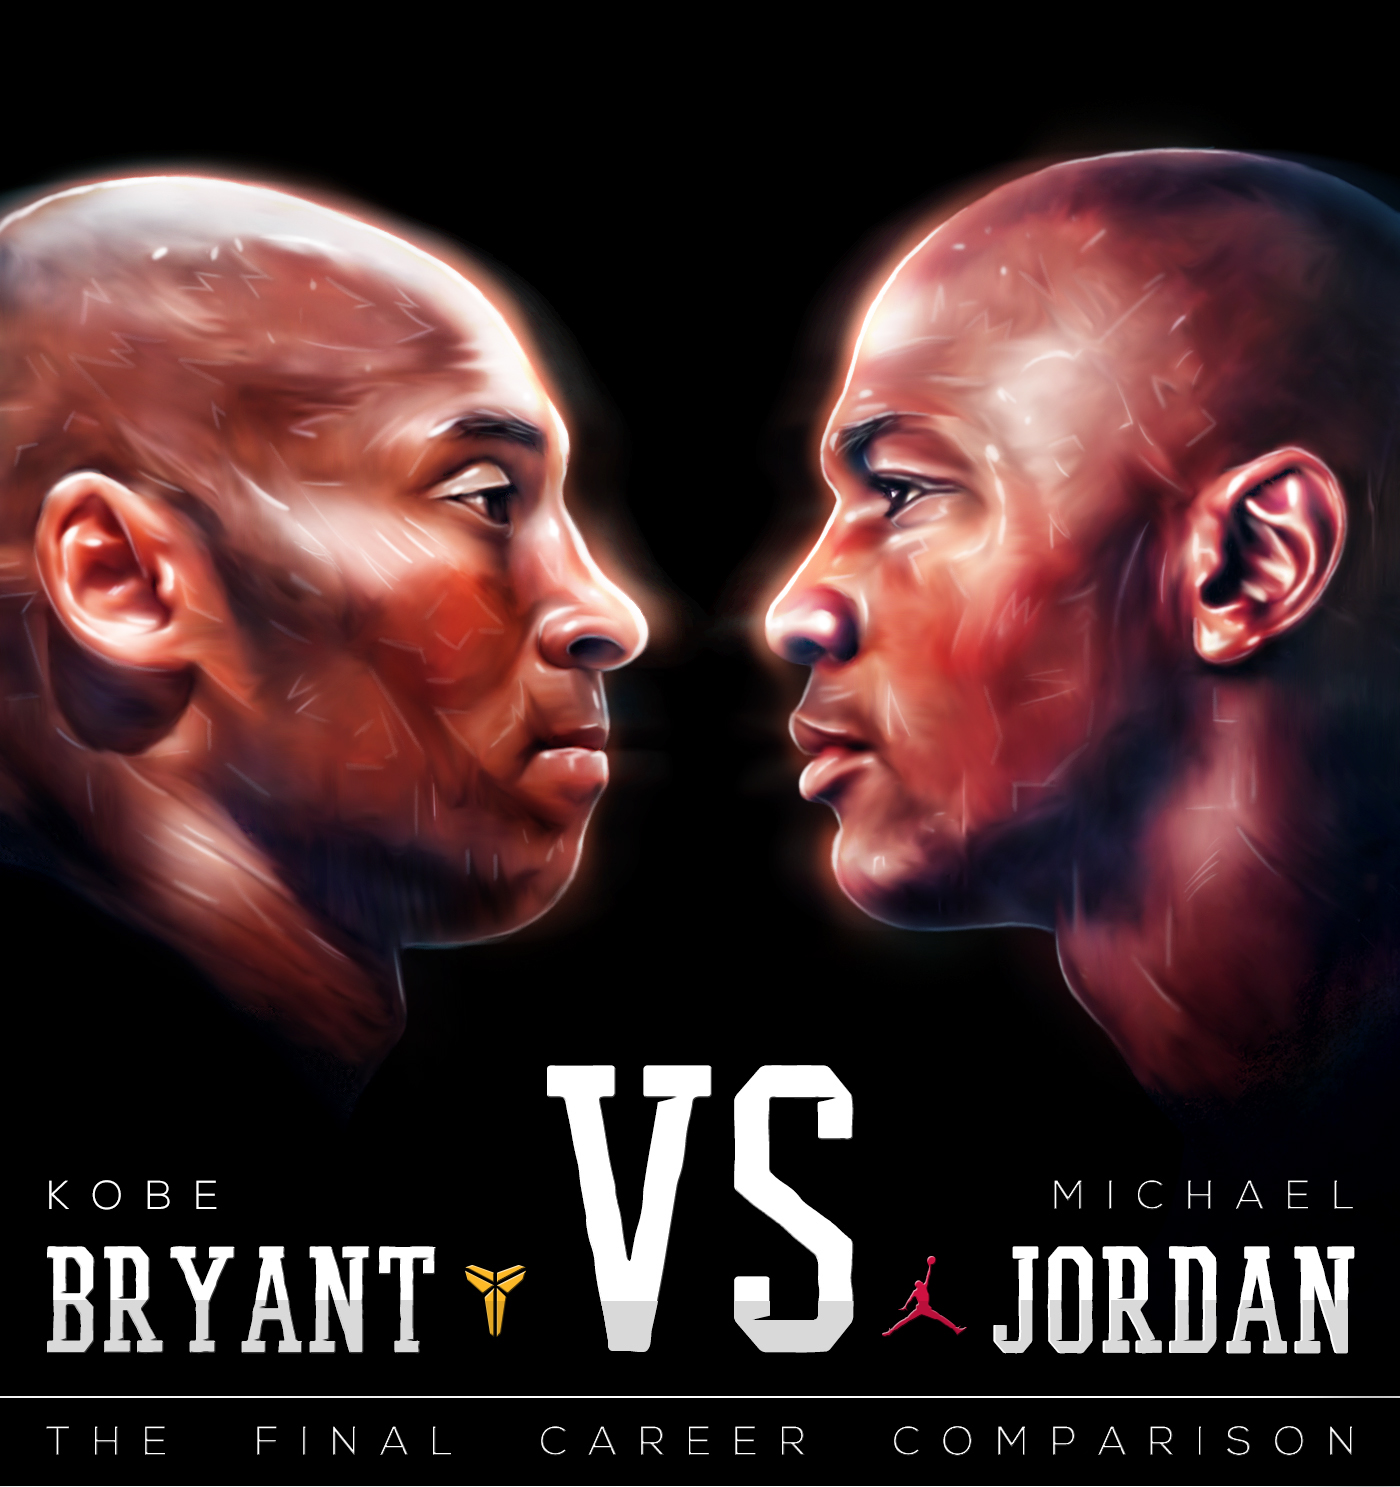 7a2655a5880a Save to Collection. Follow Following Unfollow. Kobe VS MJ - The Final  Career Comparison